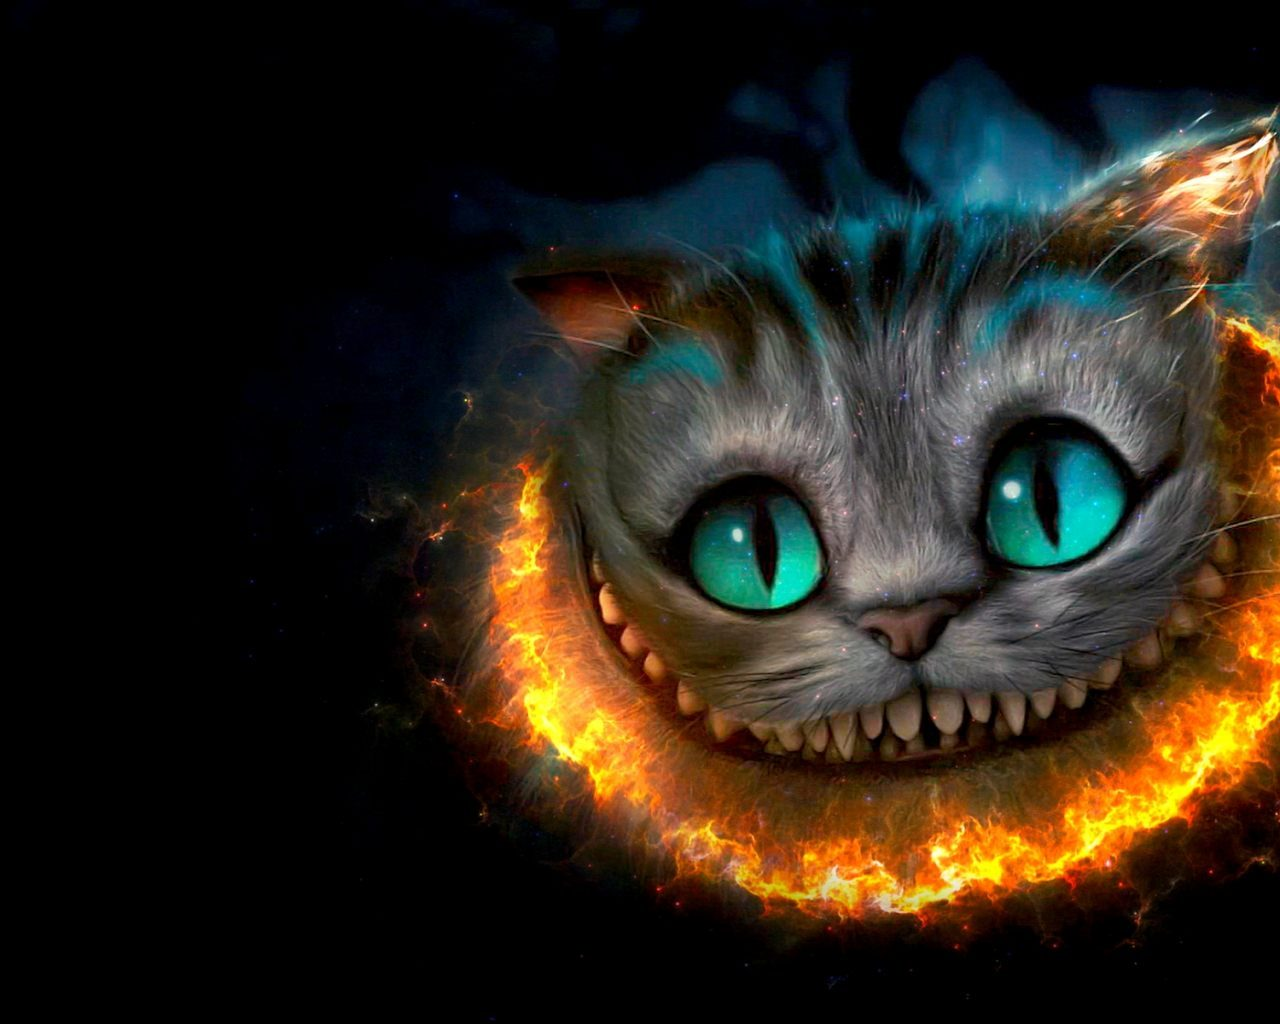 Gato cheshire 3d 1280x1024 fondos de pantalla y for Wallpapers 3d animados para pc